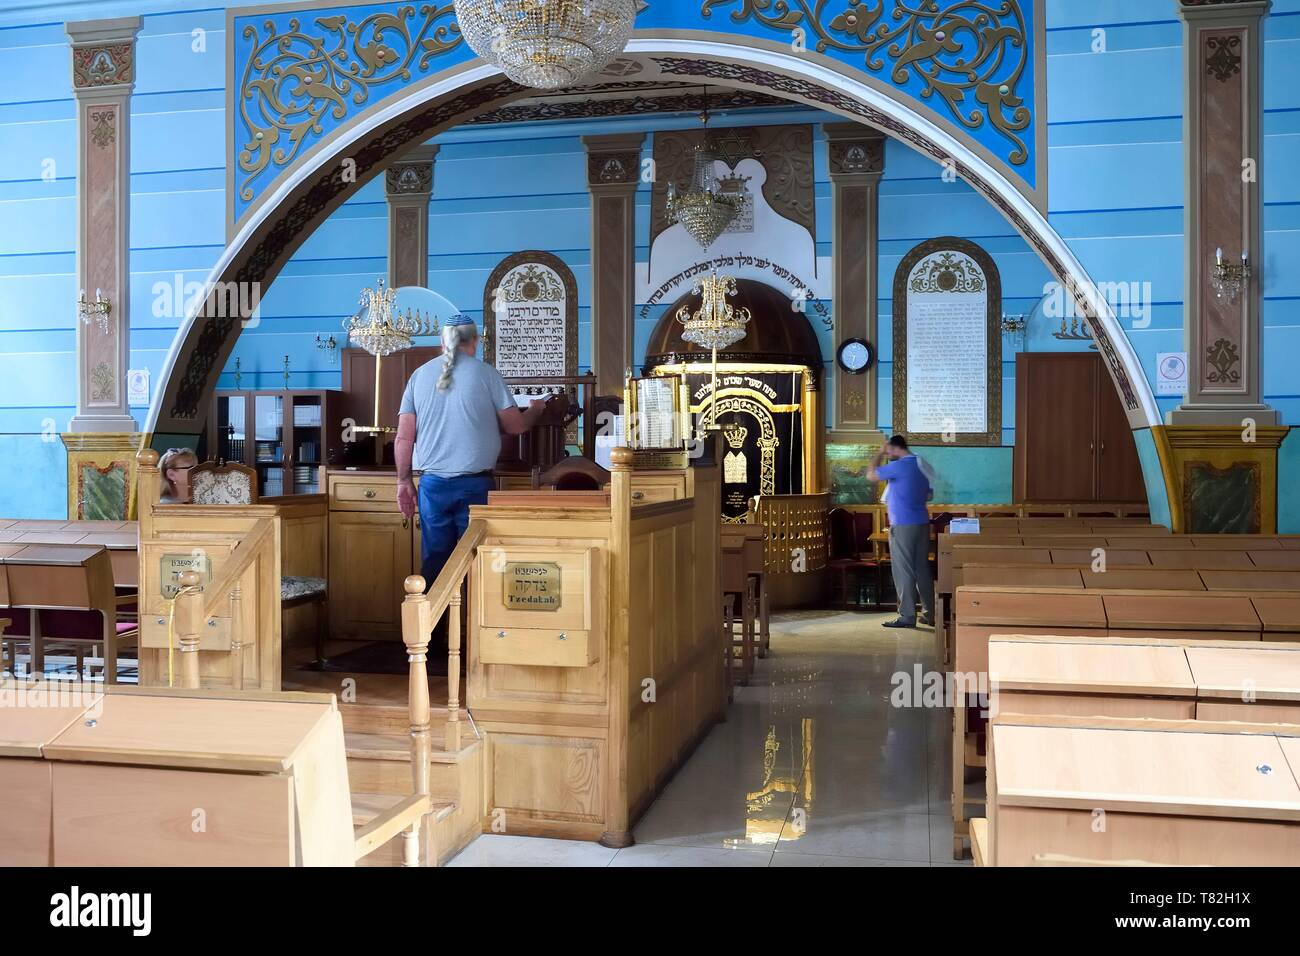 Georgia, Tbilisi, Old City, the Great Synagogue - Stock Image